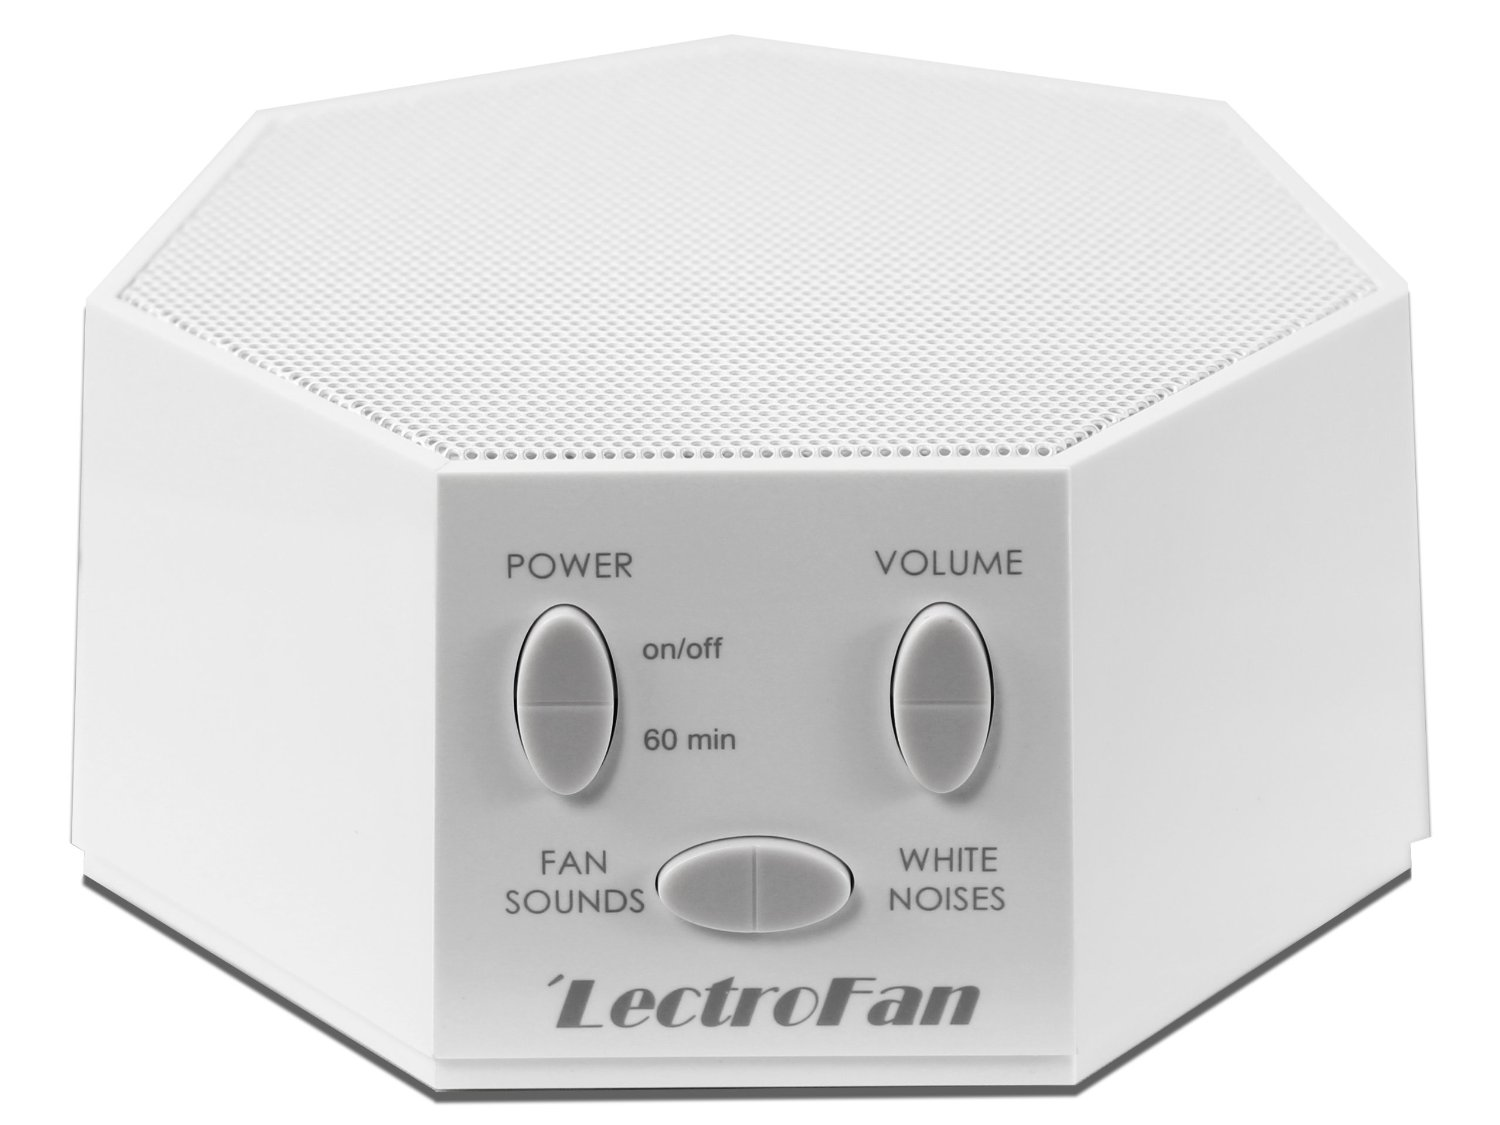 Lectrofan White Noise Machine And Electronic Fan On Back